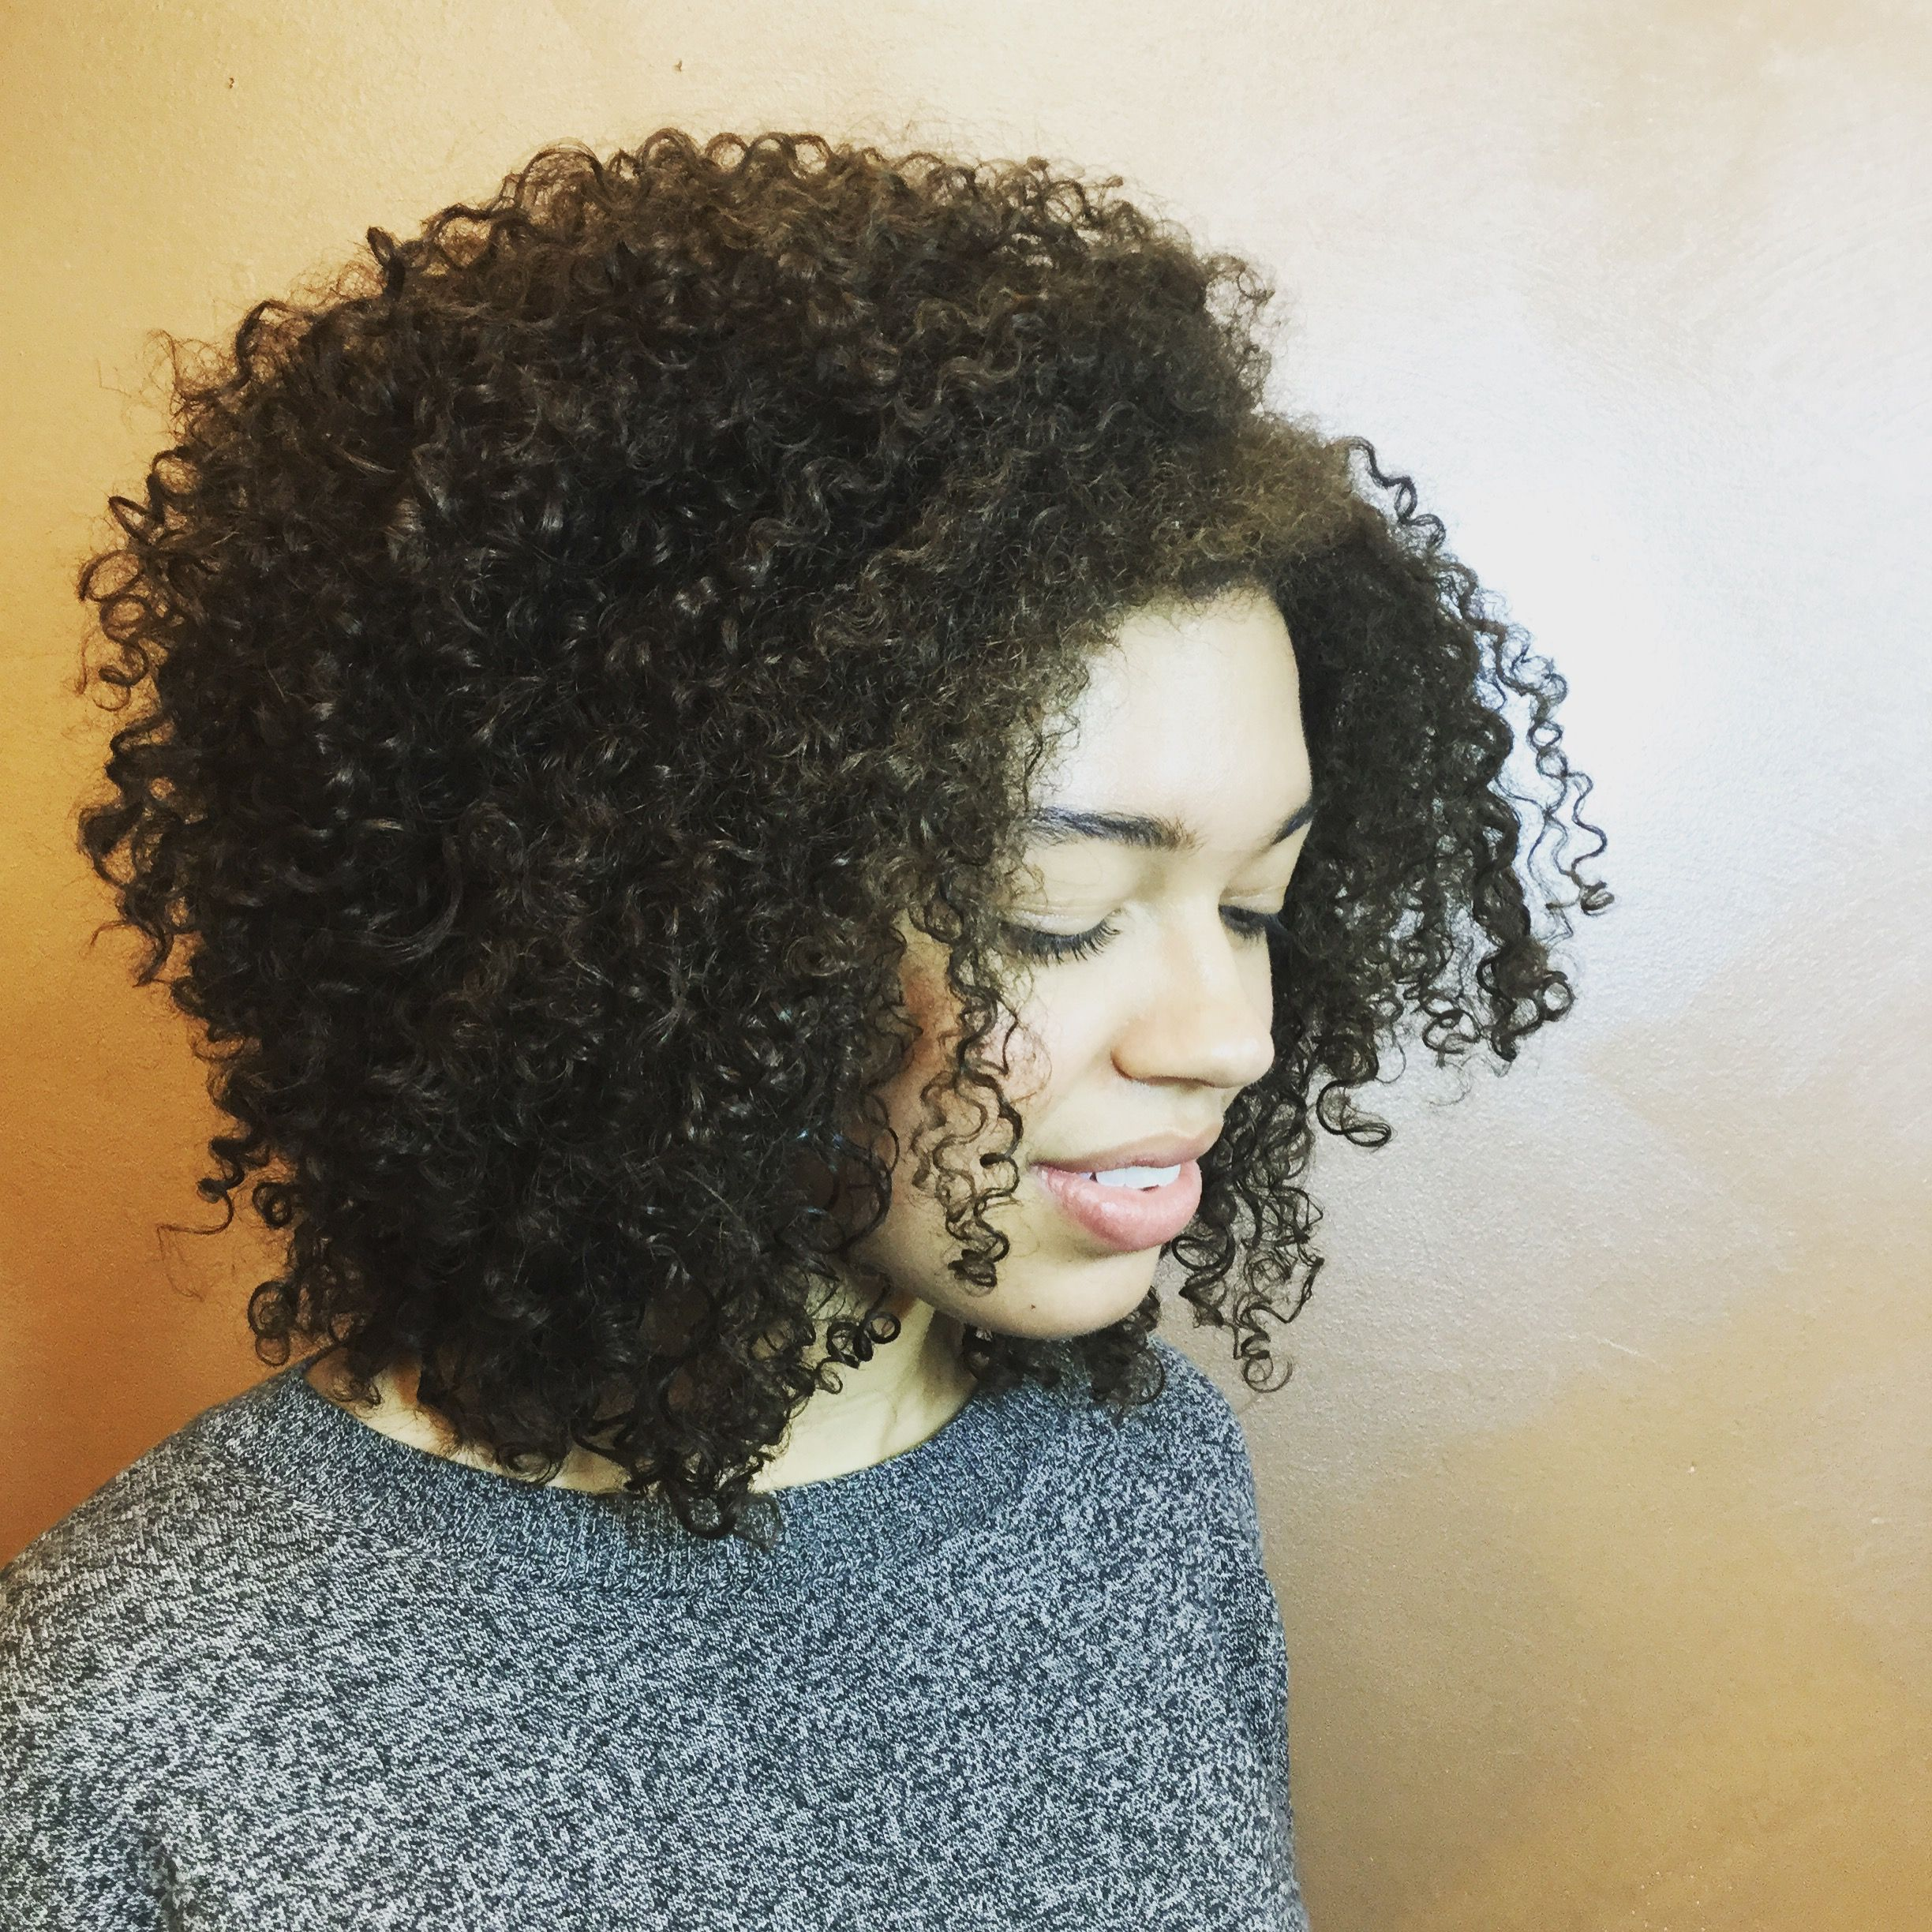 Super Curly Haircut With Waterfall Layers By Whitneycoburn Devacurl Devacurlstylist Supercurly Cabelo Cabelo Cacheado Tratamentos De Cabelo